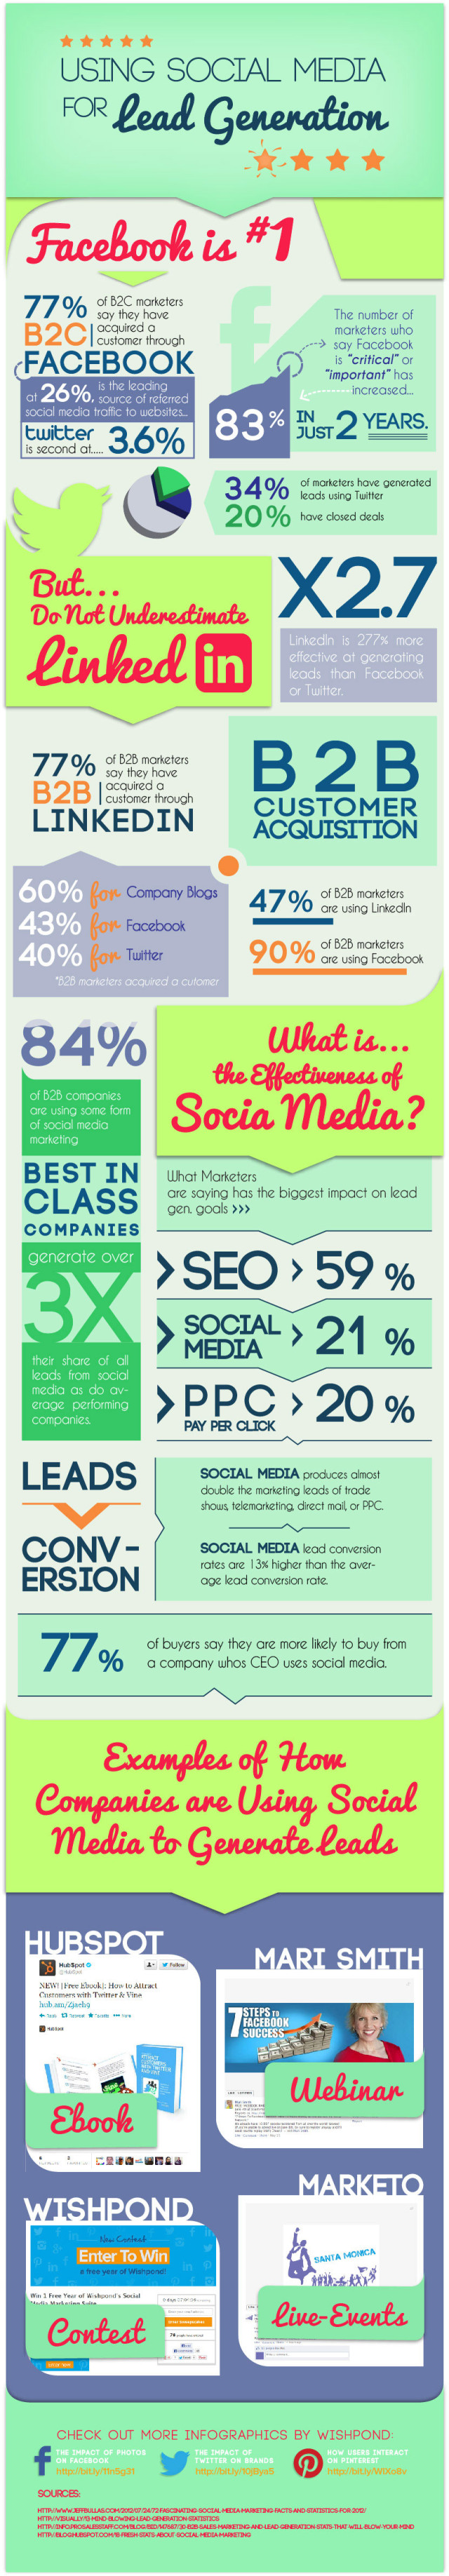 infographic_leadgeneration